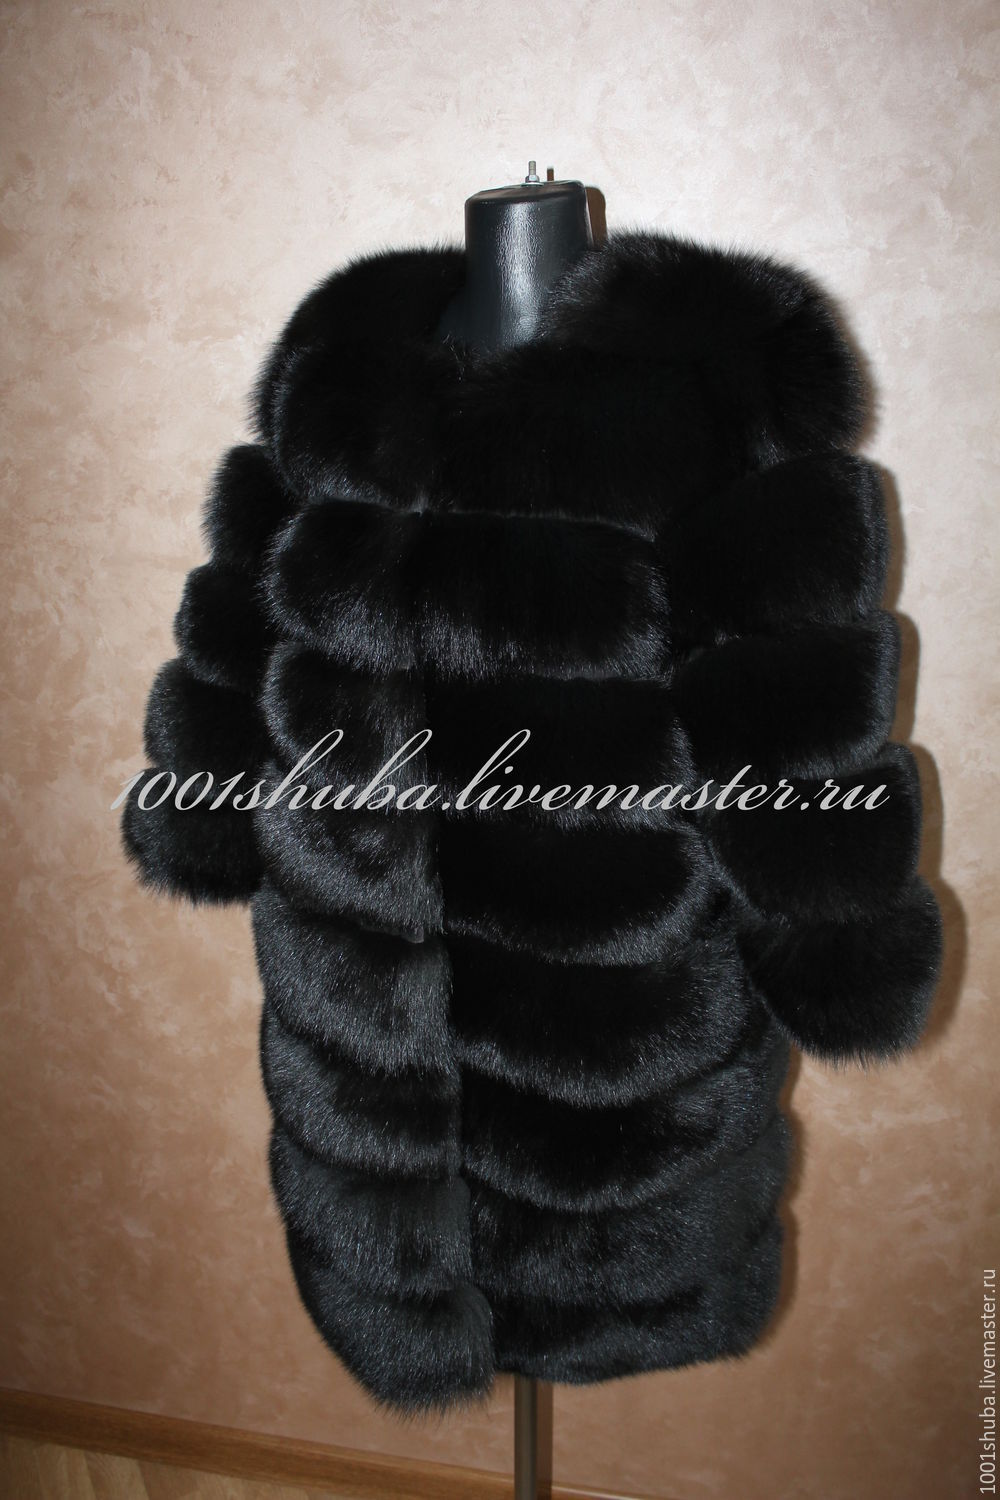 Fur coat from the Scandinavian Arctic Fox, a transverse sewing wide strips, suede, product length 80-90 smna photo, sew a possible product of any length, the coat is a little bulky,but it looks gorgeo